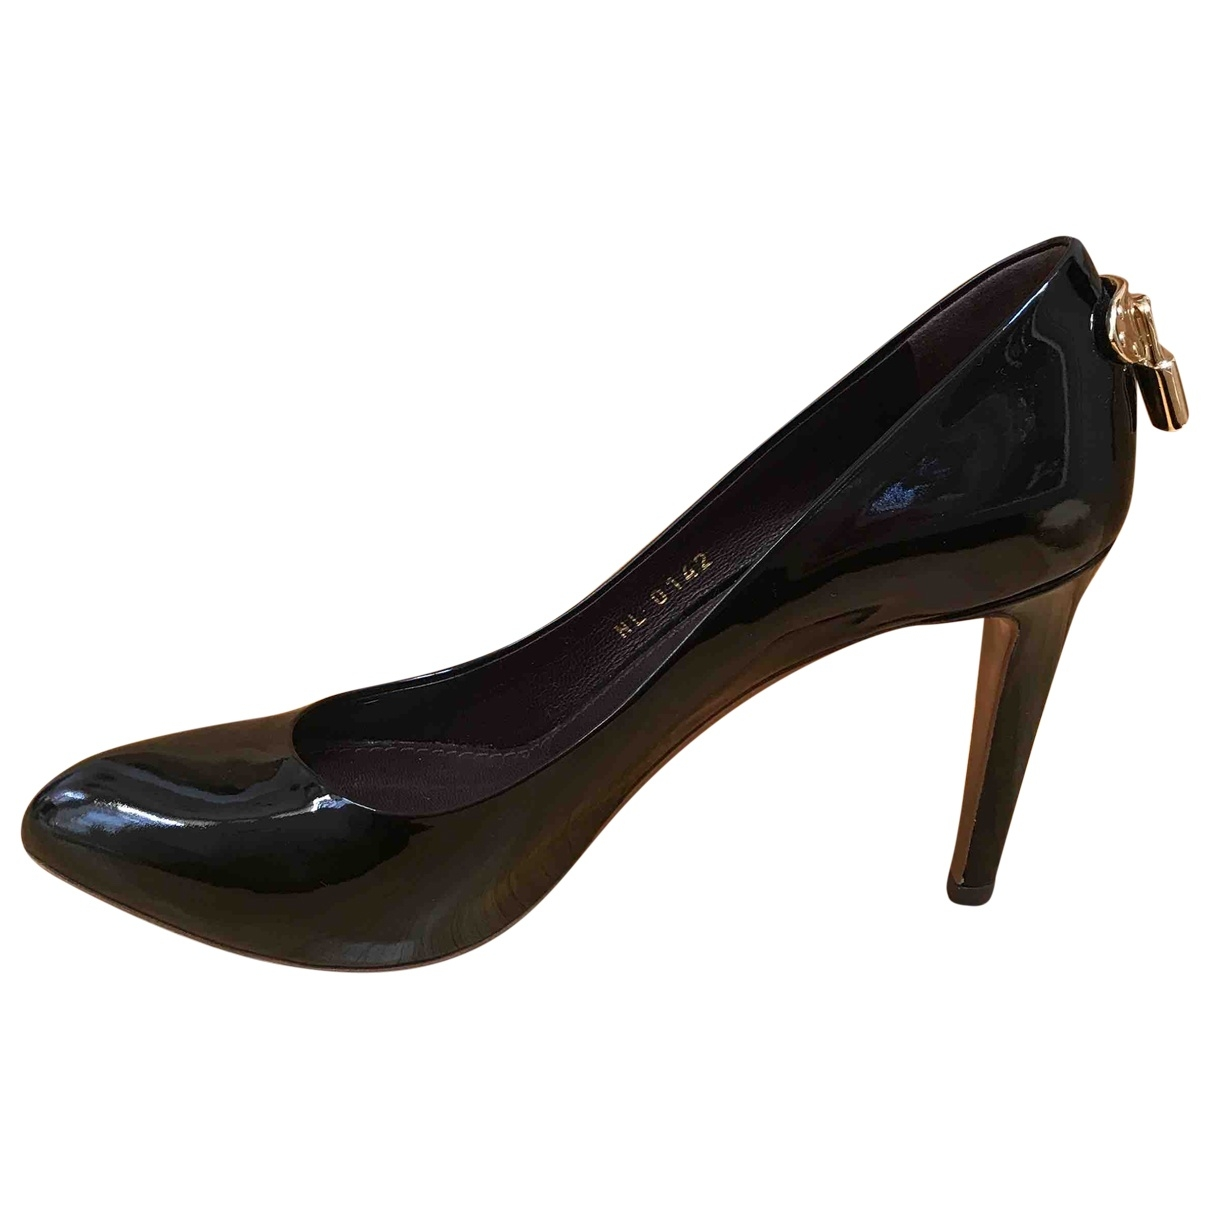 Louis Vuitton \N Pumps in  Bordeauxrot Lackleder